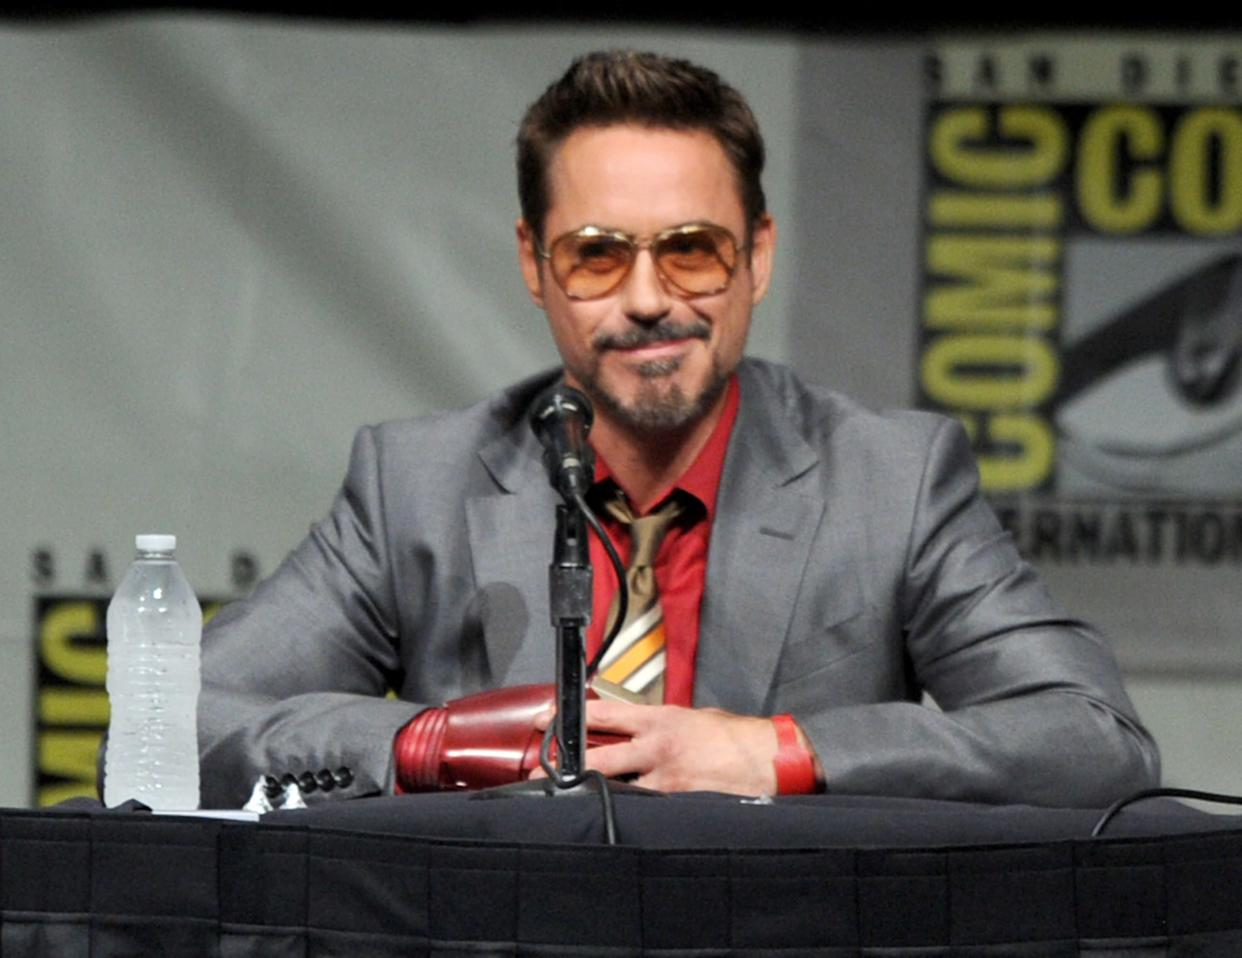 """TMI! """"I was a compulsive, serial masturbator,"""" <a href=""""http://www.popcrunch.com/robert-downey-jr-masturbation-confession/"""" rel=""""nofollow noopener"""" target=""""_blank"""" data-ylk=""""slk:the actor confessed"""" class=""""link rapid-noclick-resp"""">the actor confessed</a>, adding, """"I utilized that organ and rode it for everything it was worth."""""""